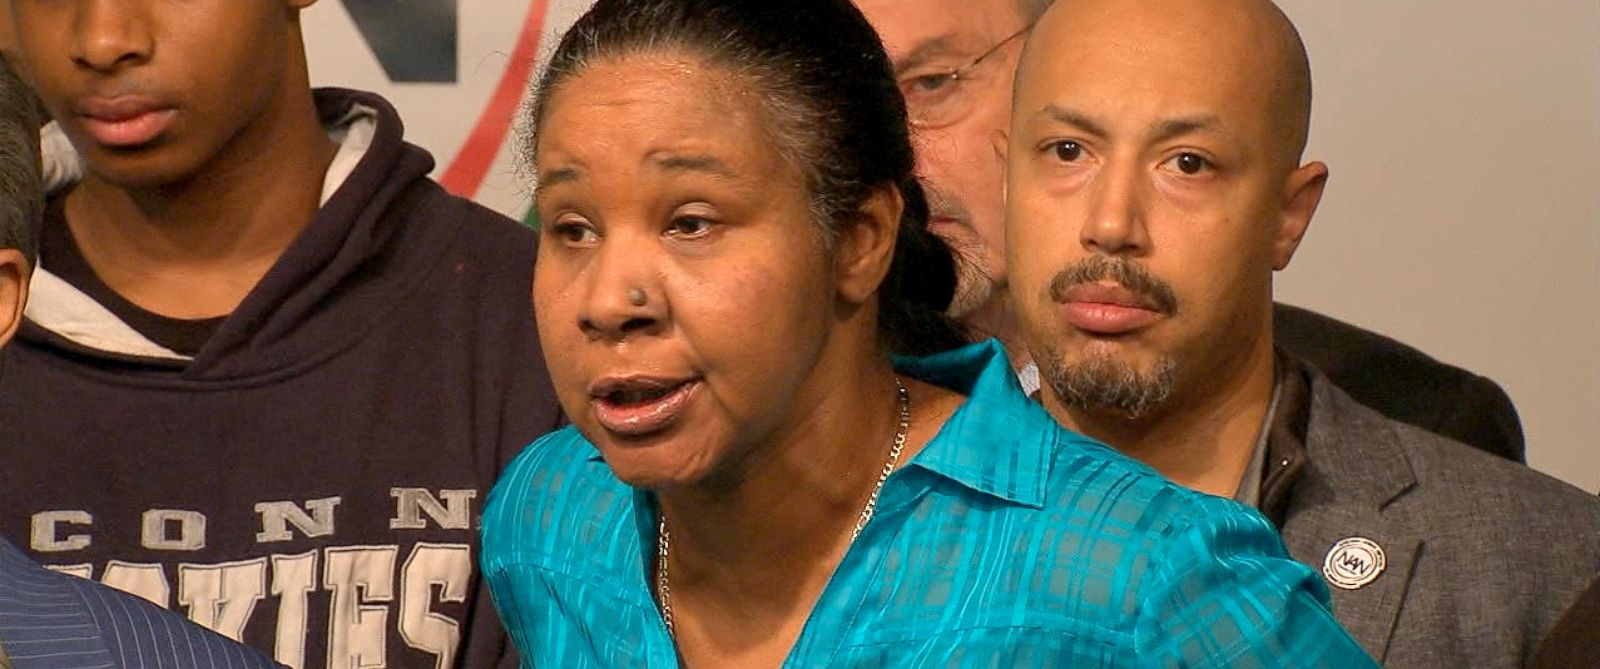 PHOTO: Eric Garners widow, Esaw Garner, speaks during a press conference, Dec. 3, 2014, in New York City in response to the grand jury decision not to indict the NYPD officer responsible for the choke hold death of Eric Garner back in July.